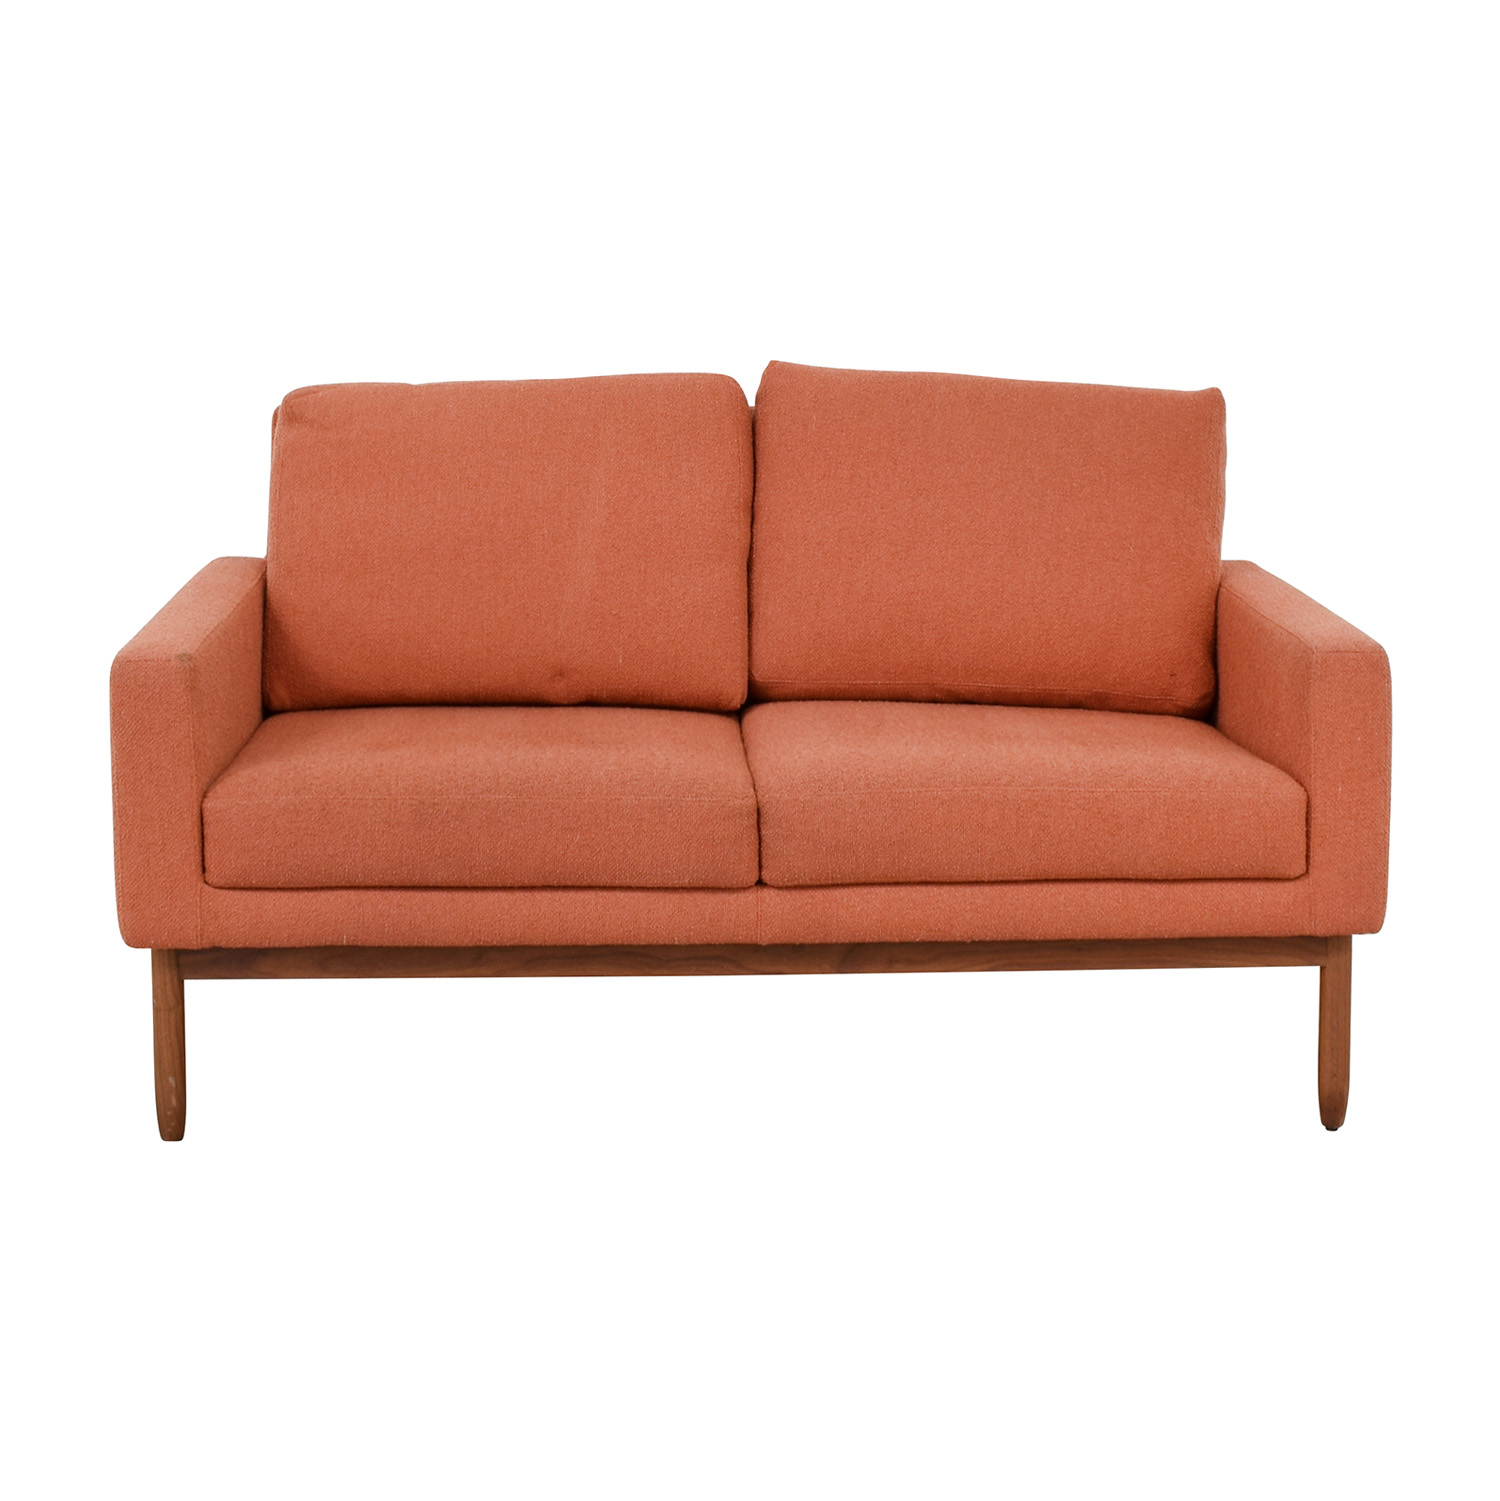 buy Design Within Reach Raleigh Paprika Two-Cushion Sofa Design Within Reach Loveseats